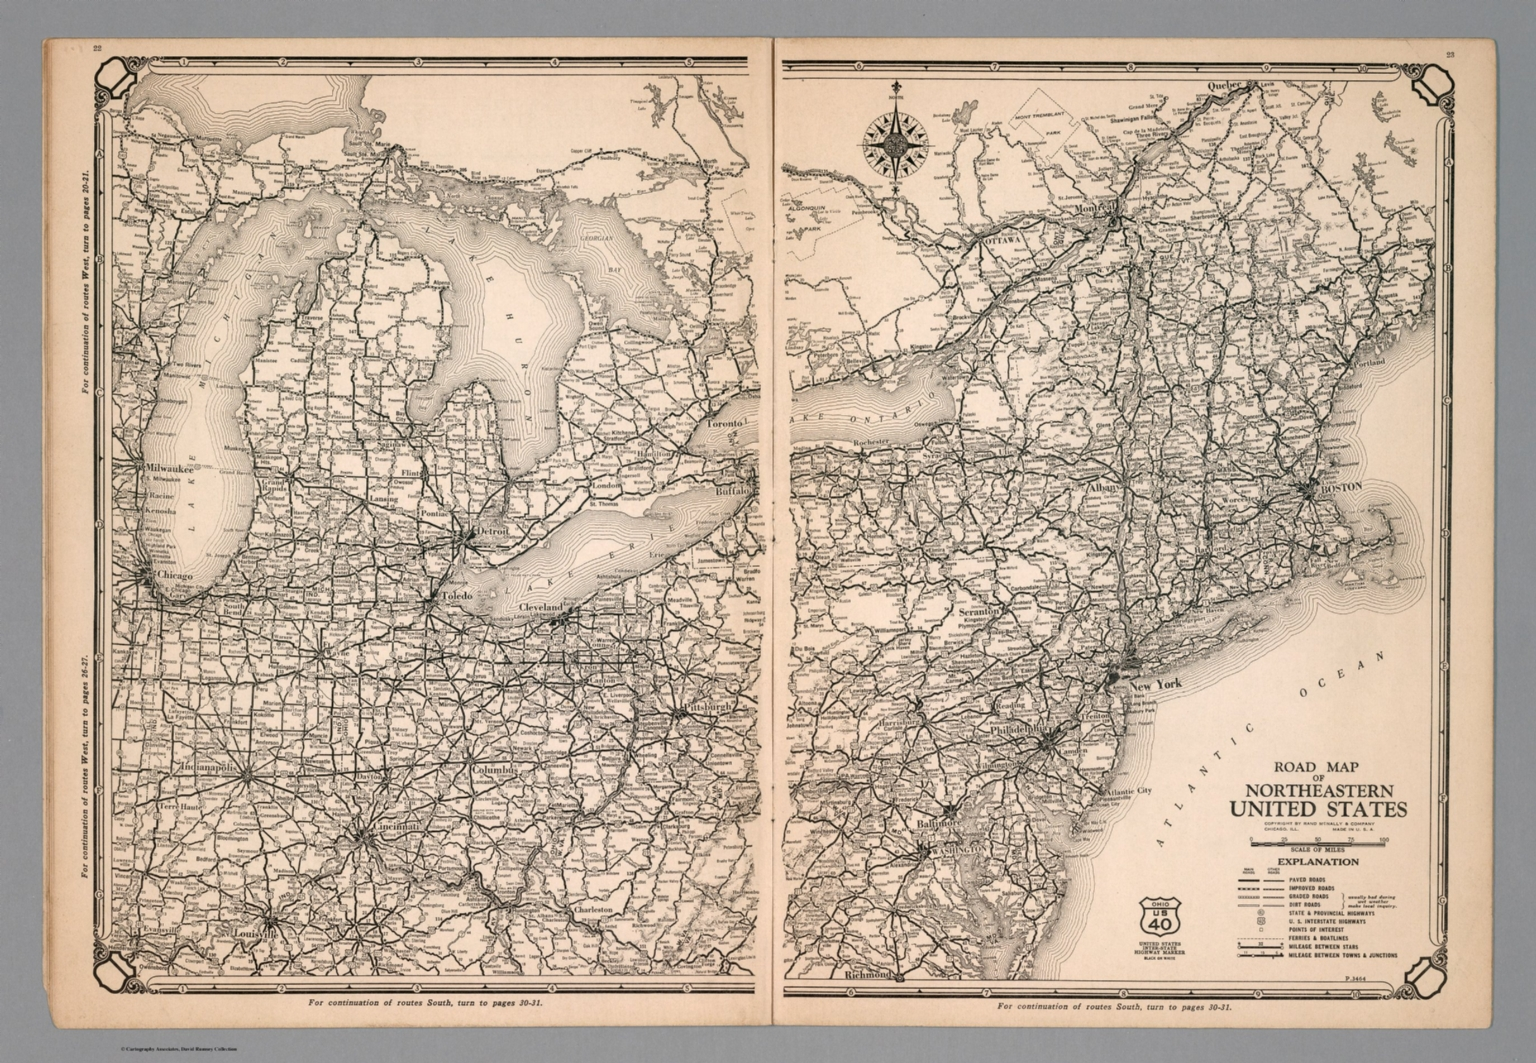 Road map of Northeastern United States - David Rumsey ... Uncolored Picture Map Of Usa on blank map of usa, real map of usa, natural map of usa, detailed map of usa, clean map of usa, unlabeled map of usa, transparent map of usa, yellow map of usa,